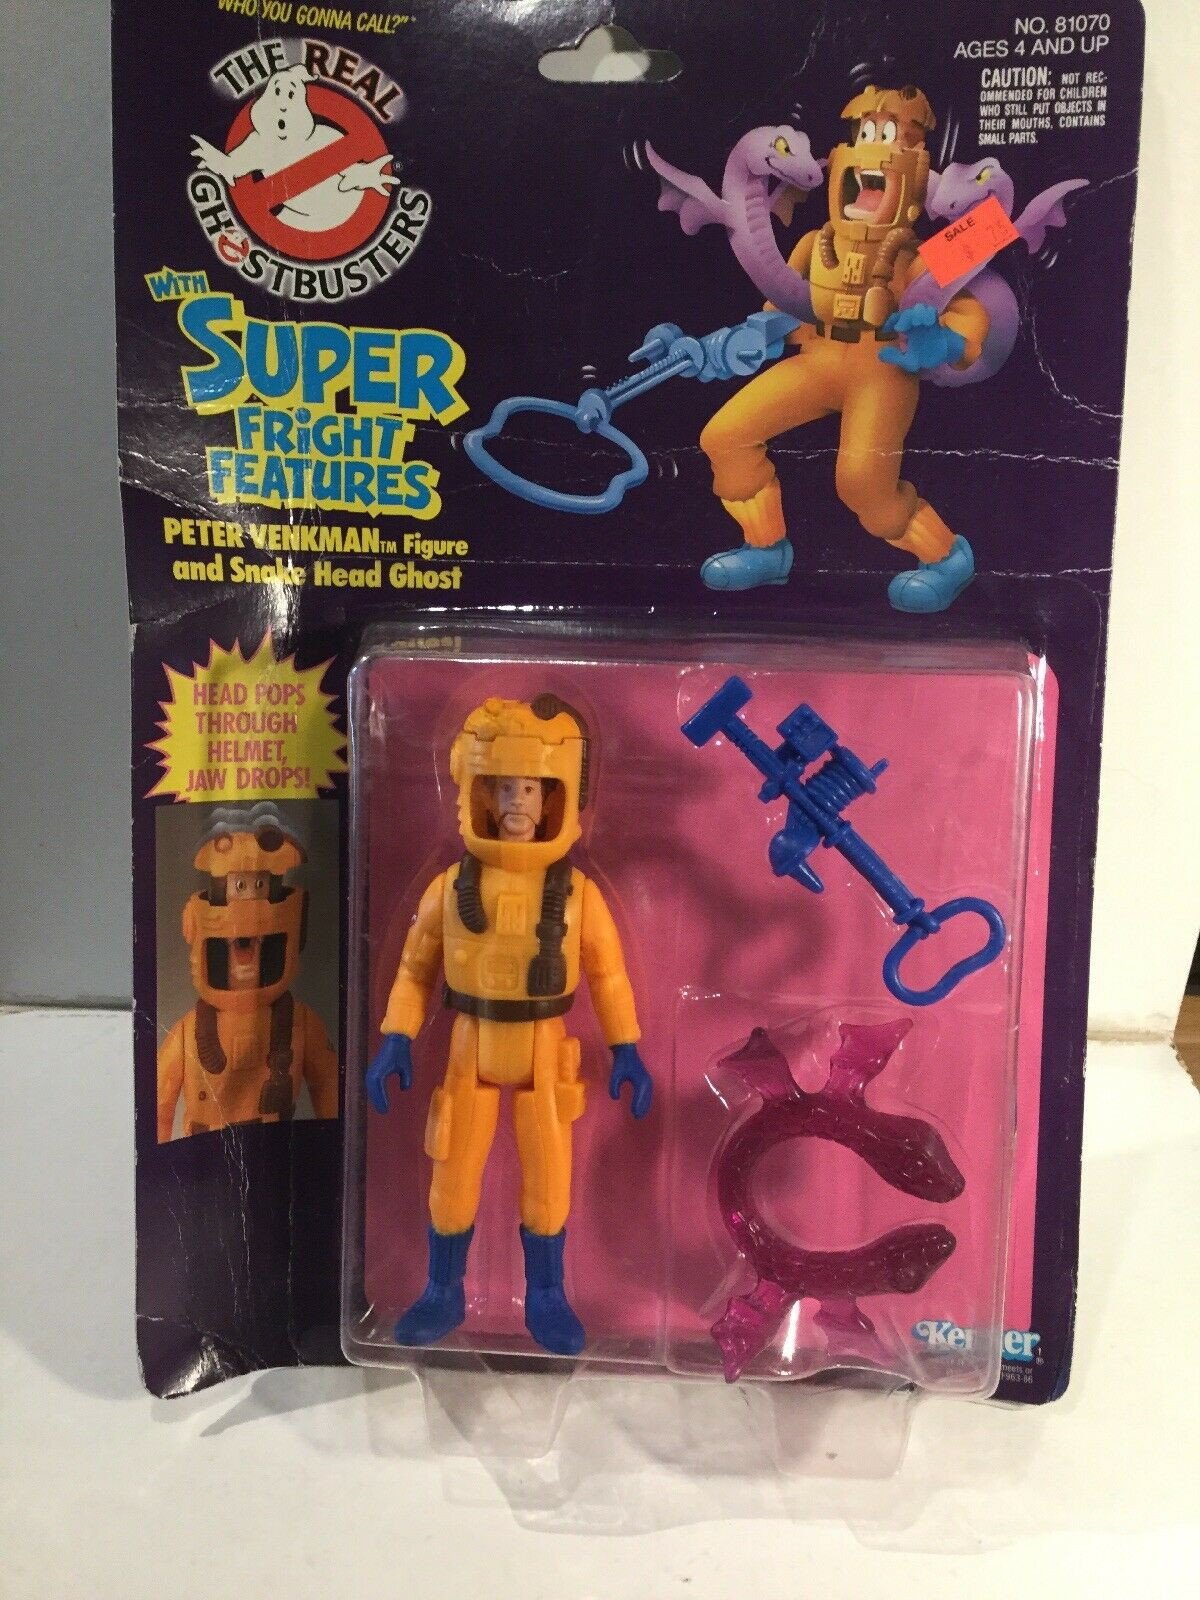 1980's Kenner The Real Ghostbusters Peter Venkman & Snake Head Ghost Sealed